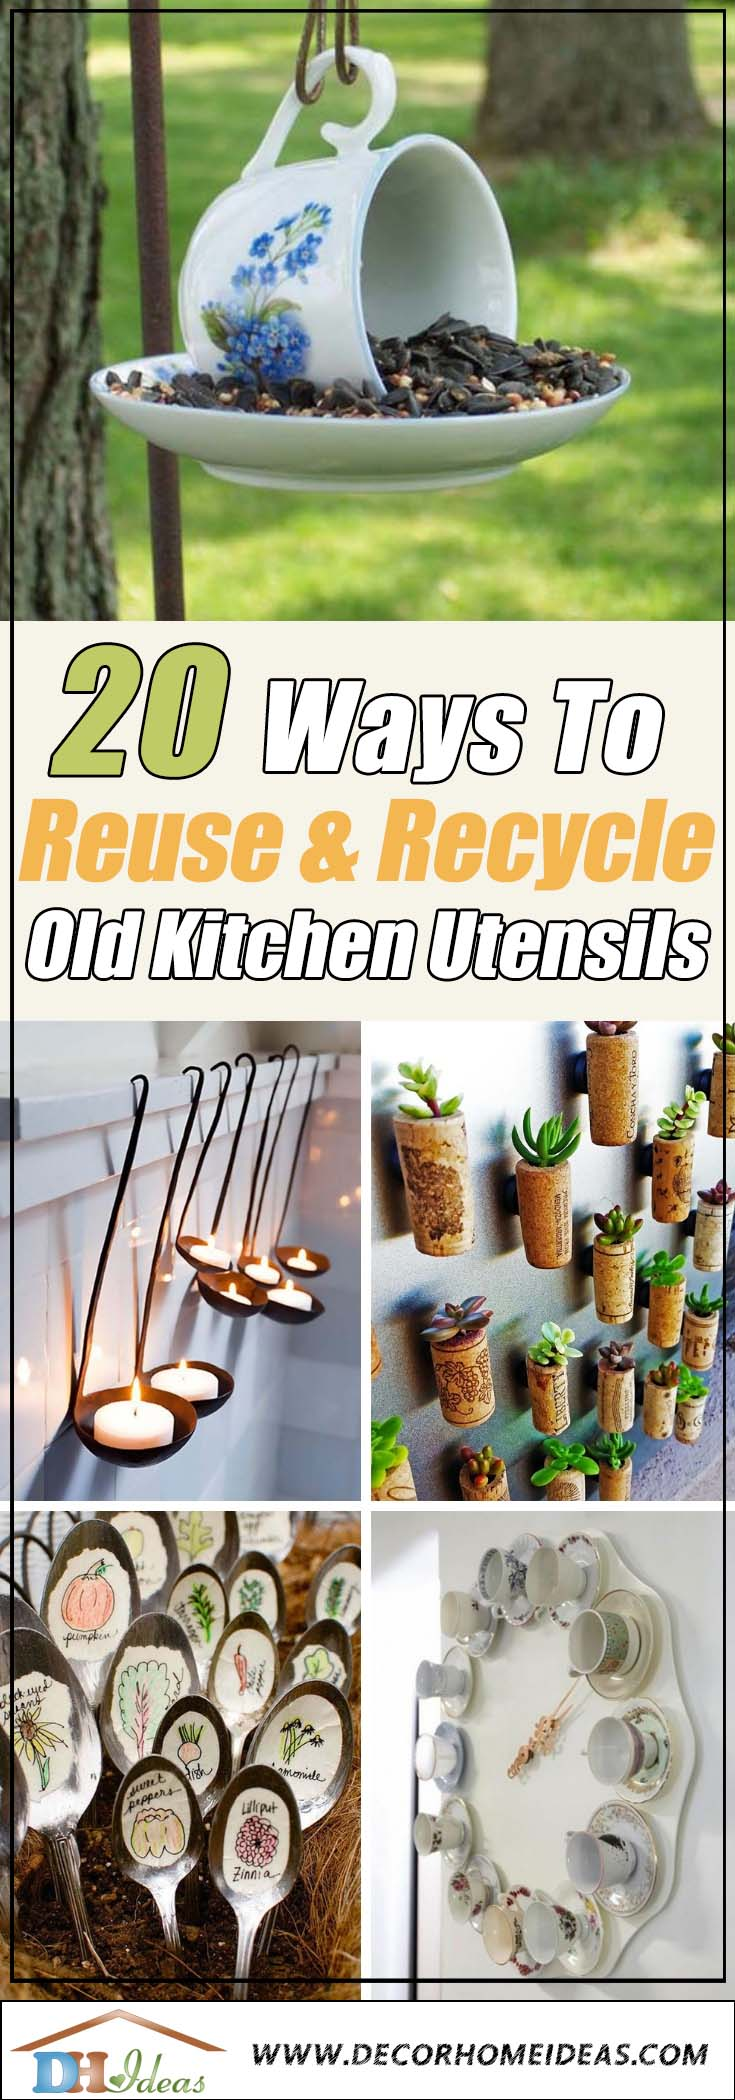 How To Reuse Old Kitchen Utensils #repurpose #reuse #kitchen #utensil #decorhomeideas